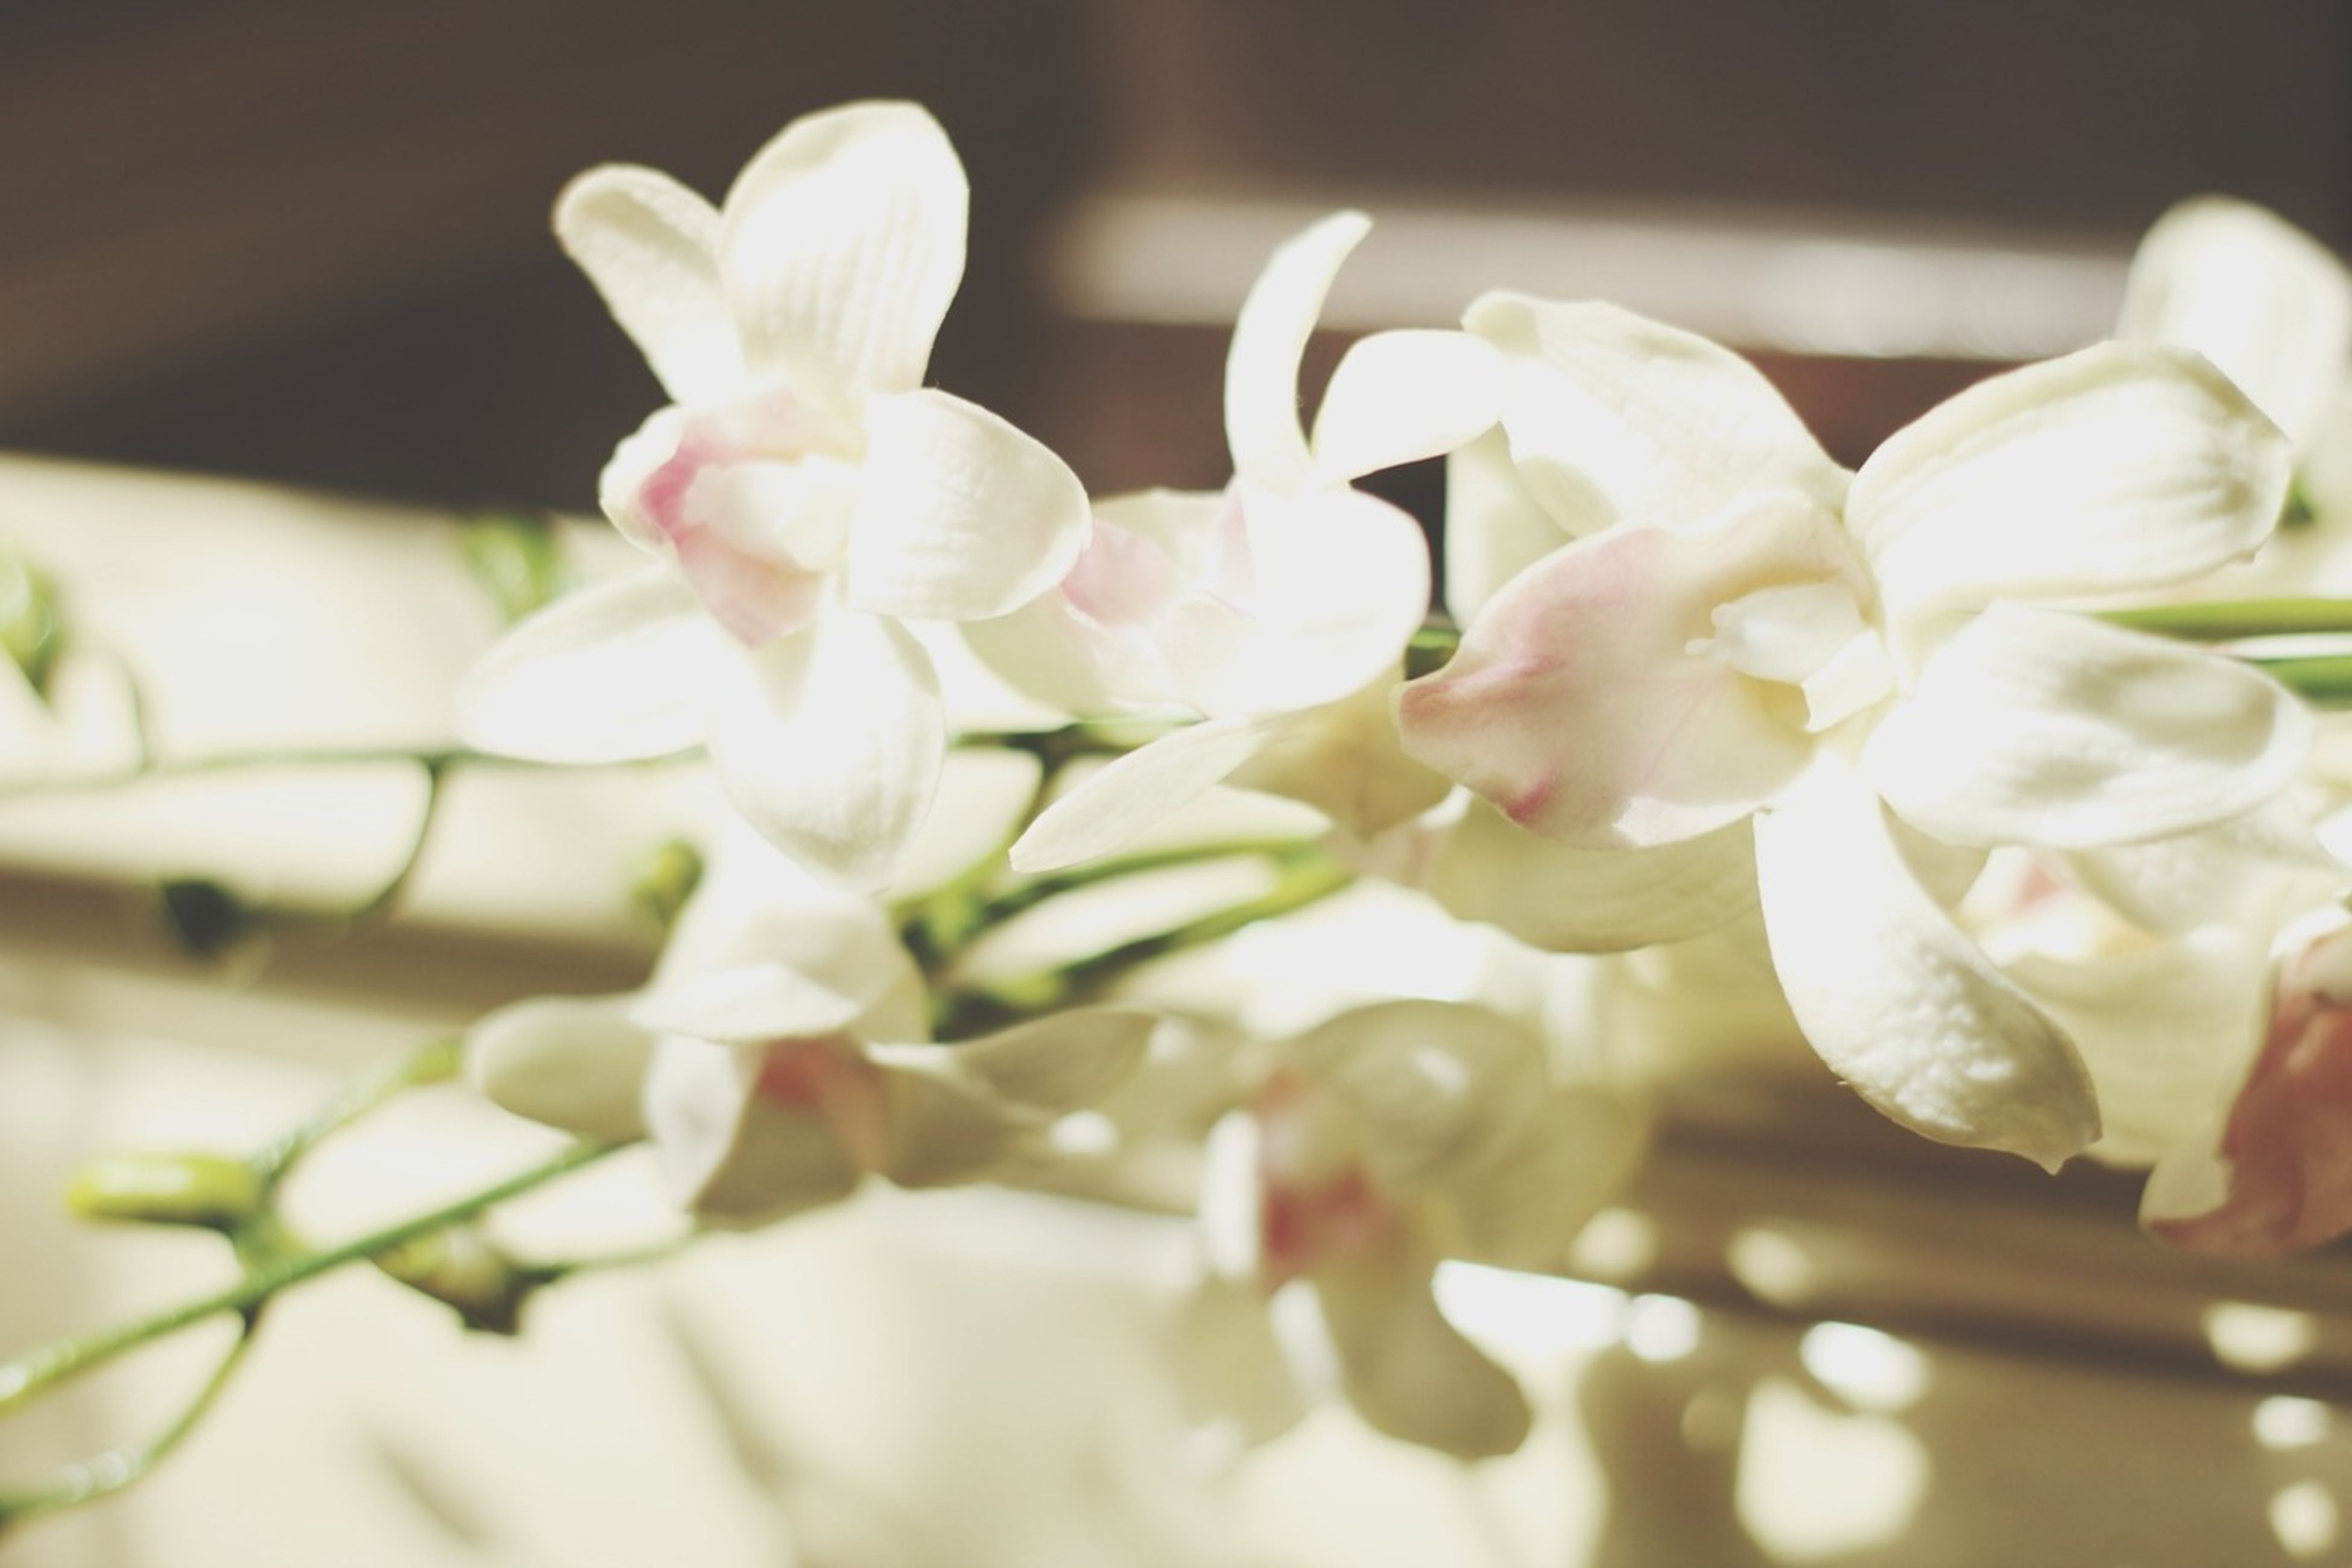 flower, petal, freshness, fragility, flower head, close-up, indoors, white color, beauty in nature, growth, nature, blooming, selective focus, focus on foreground, plant, in bloom, blossom, no people, vase, orchid